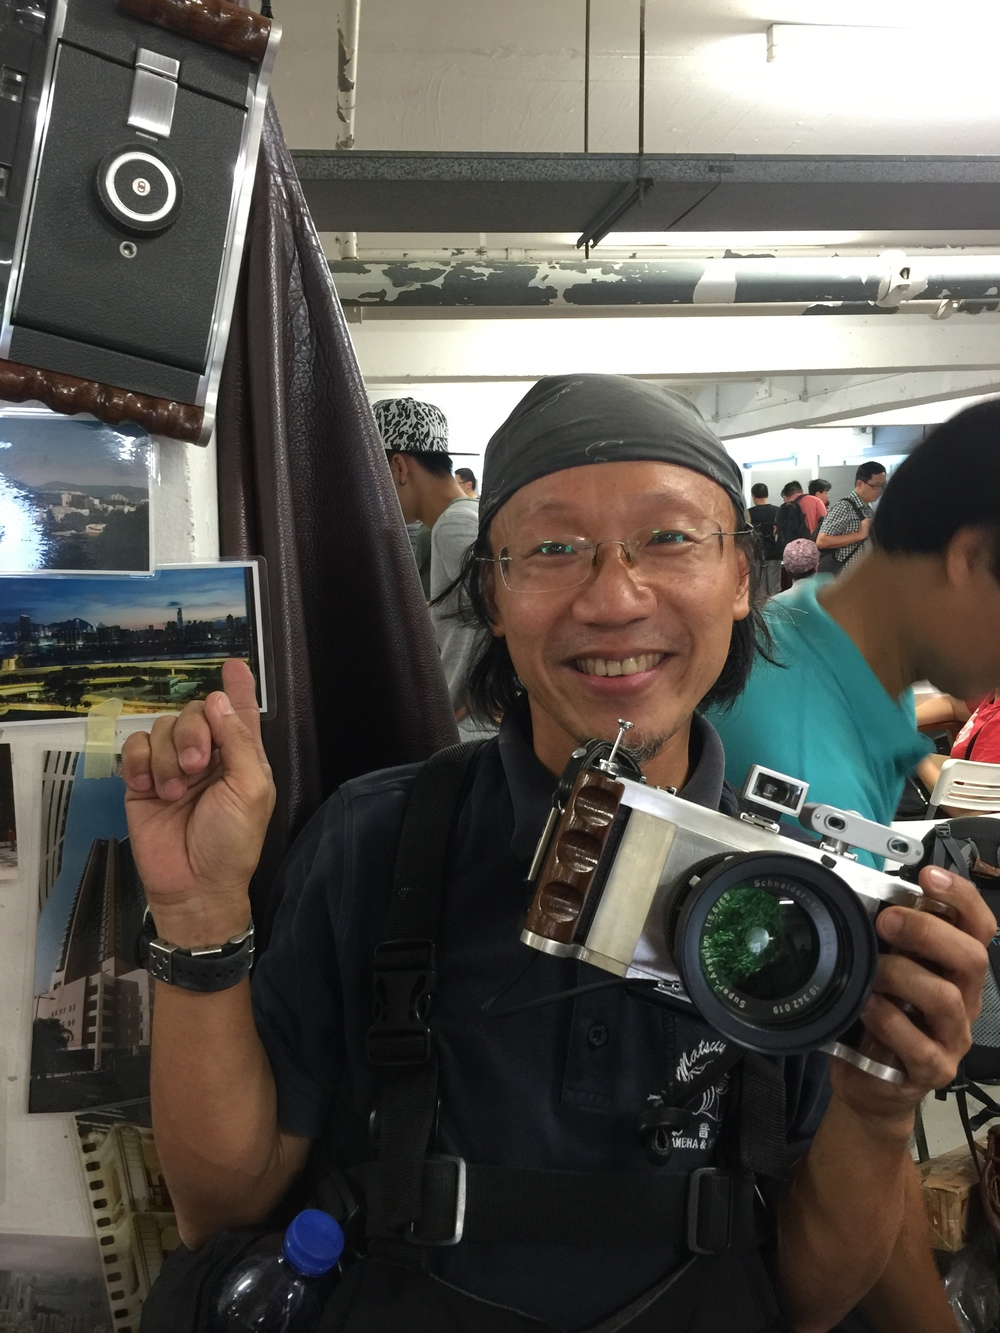 Tom Chung demonstrates the wares at the Classic Camera Shop HK stall (Photo iPhone 6 Plus)